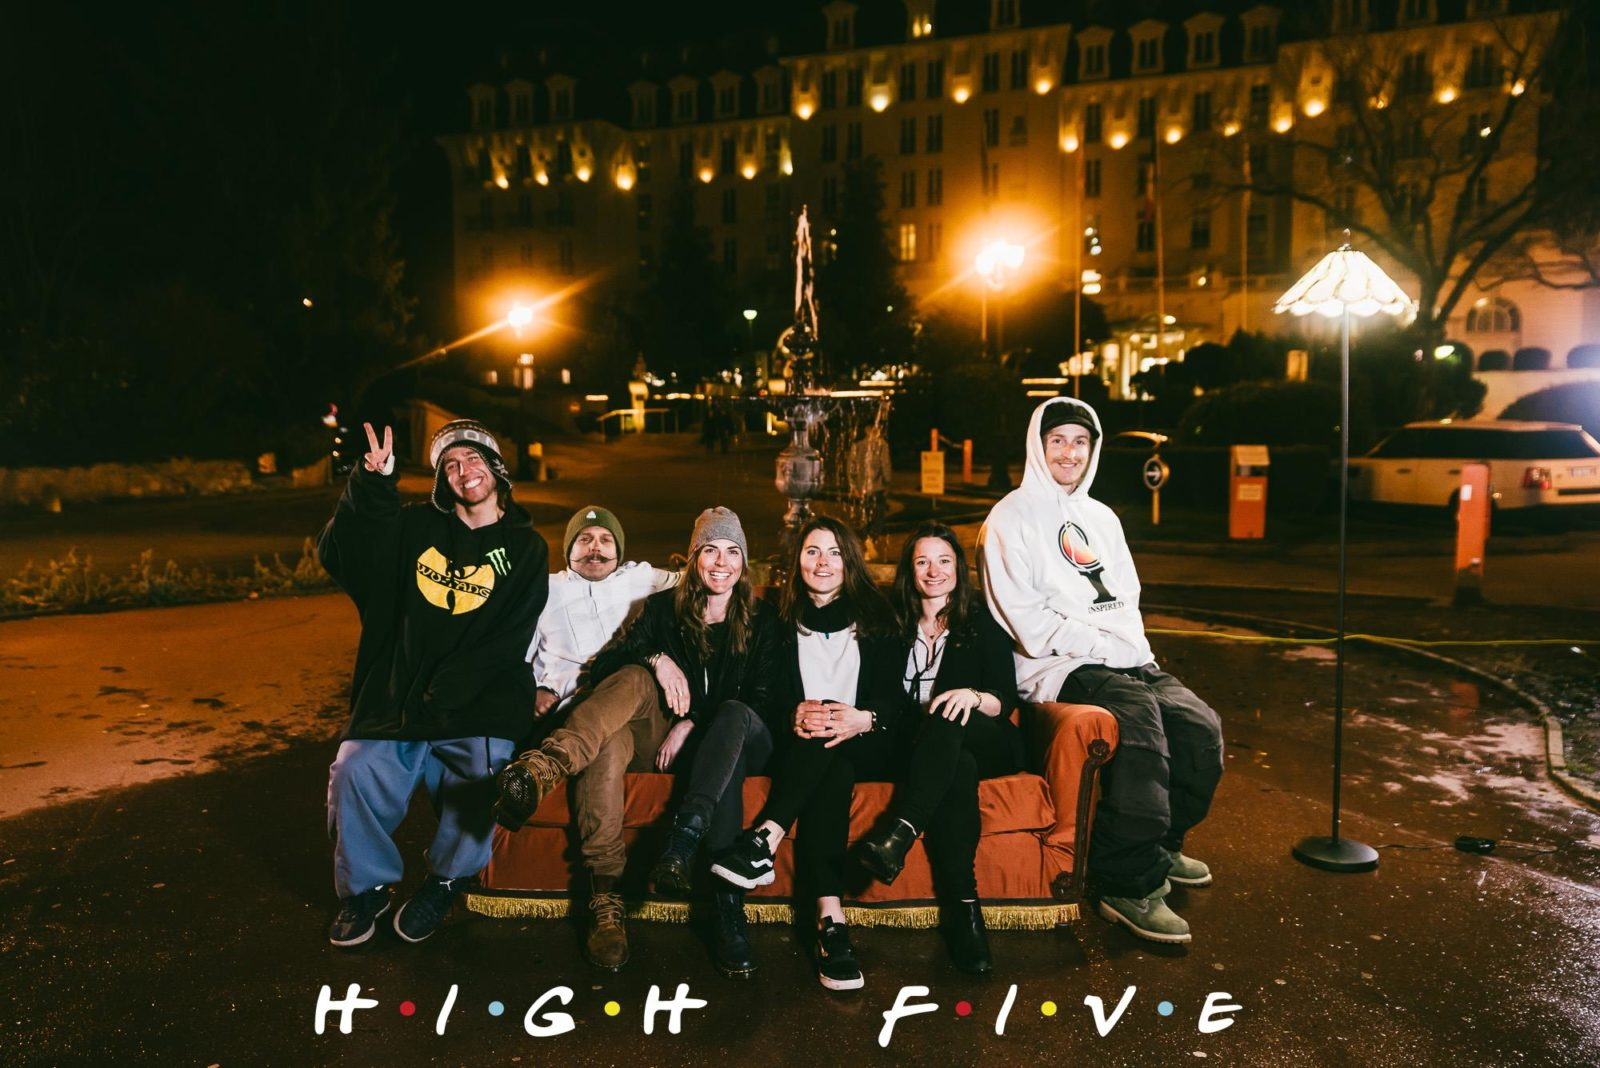 Festival High Five 2018 Friends - Films, big air, animations : le High Five festival célèbre le ski sous toutes ses formes !